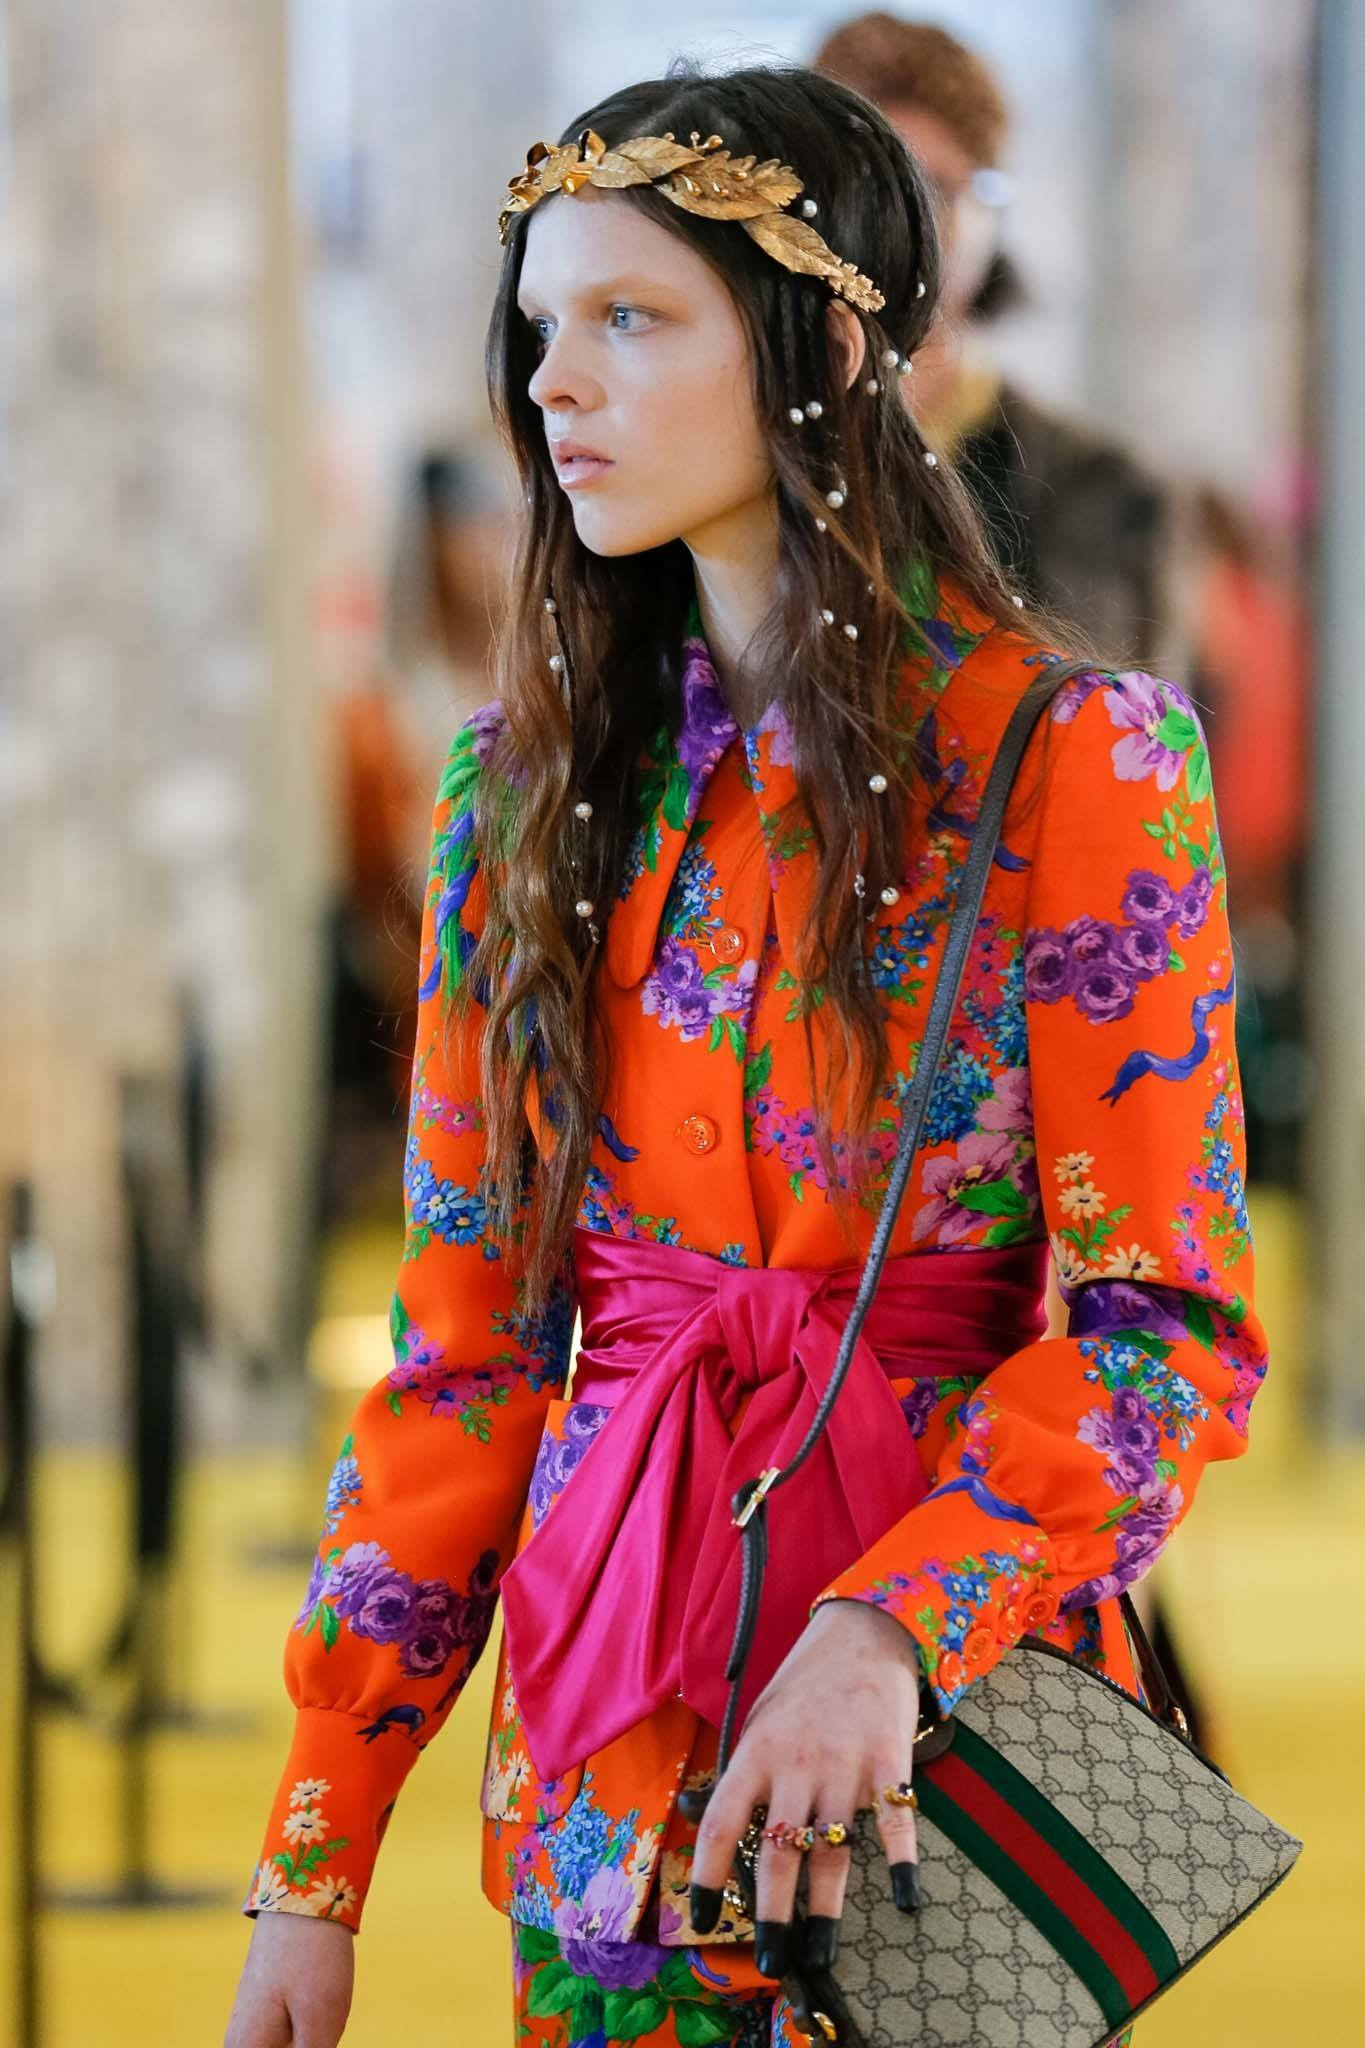 Gucci 2018 - long brown hair model with pearls placed through the length of hair